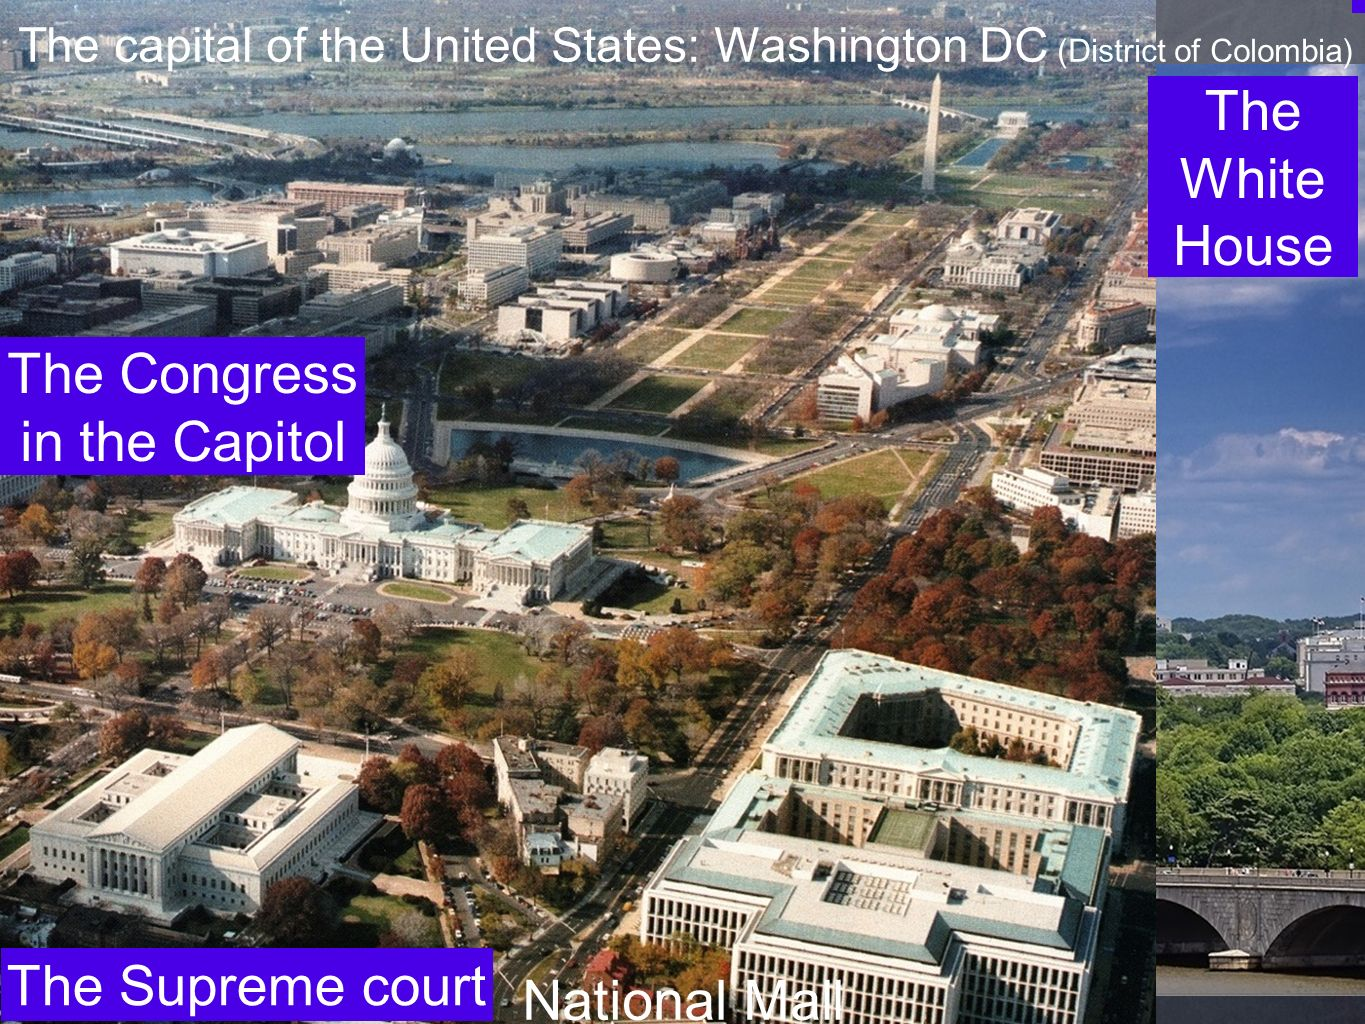 Senat (The senate) Repräsentanten -haus (The House) United States Capitol Osten Kongress Westen Nord-StaatenSüd-Staaten The Supreme court The supreme court The Congress in the Capitol The White House The capital of the United States: Washington DC (District of Colombia) National Mall